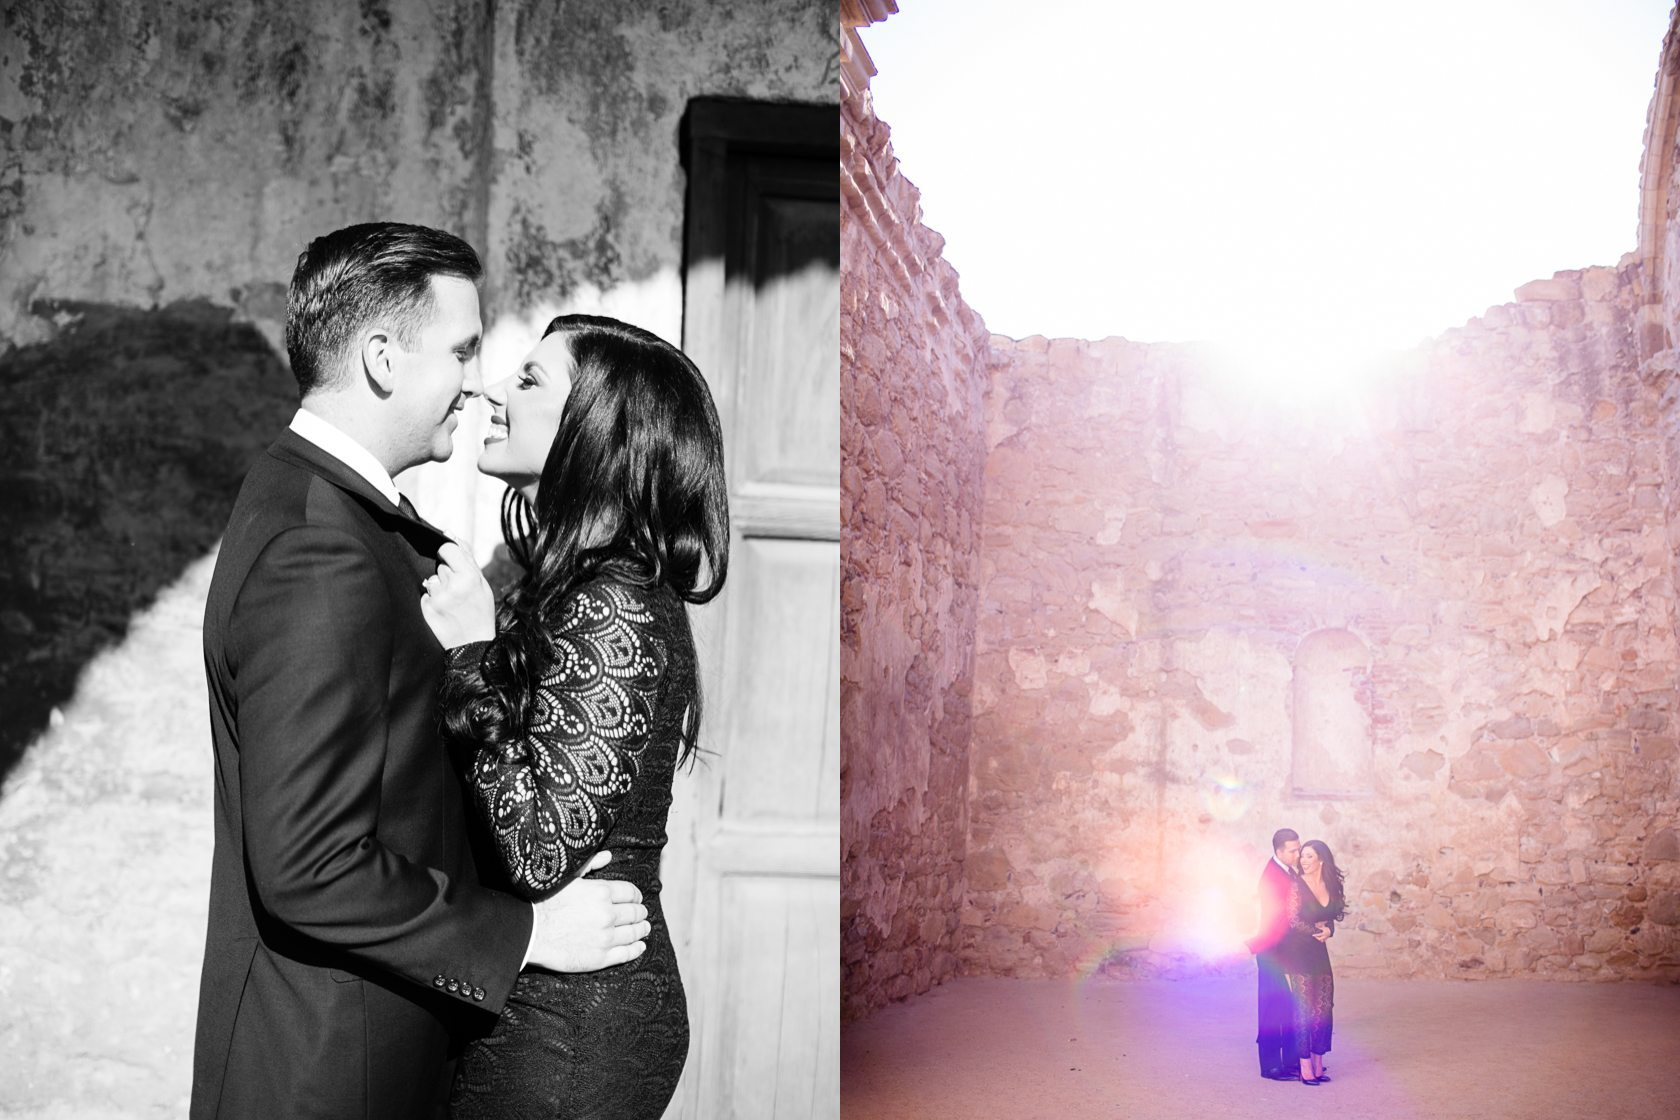 Mission_San_Juan_Capistrano_Engagement_Session_17.jpg